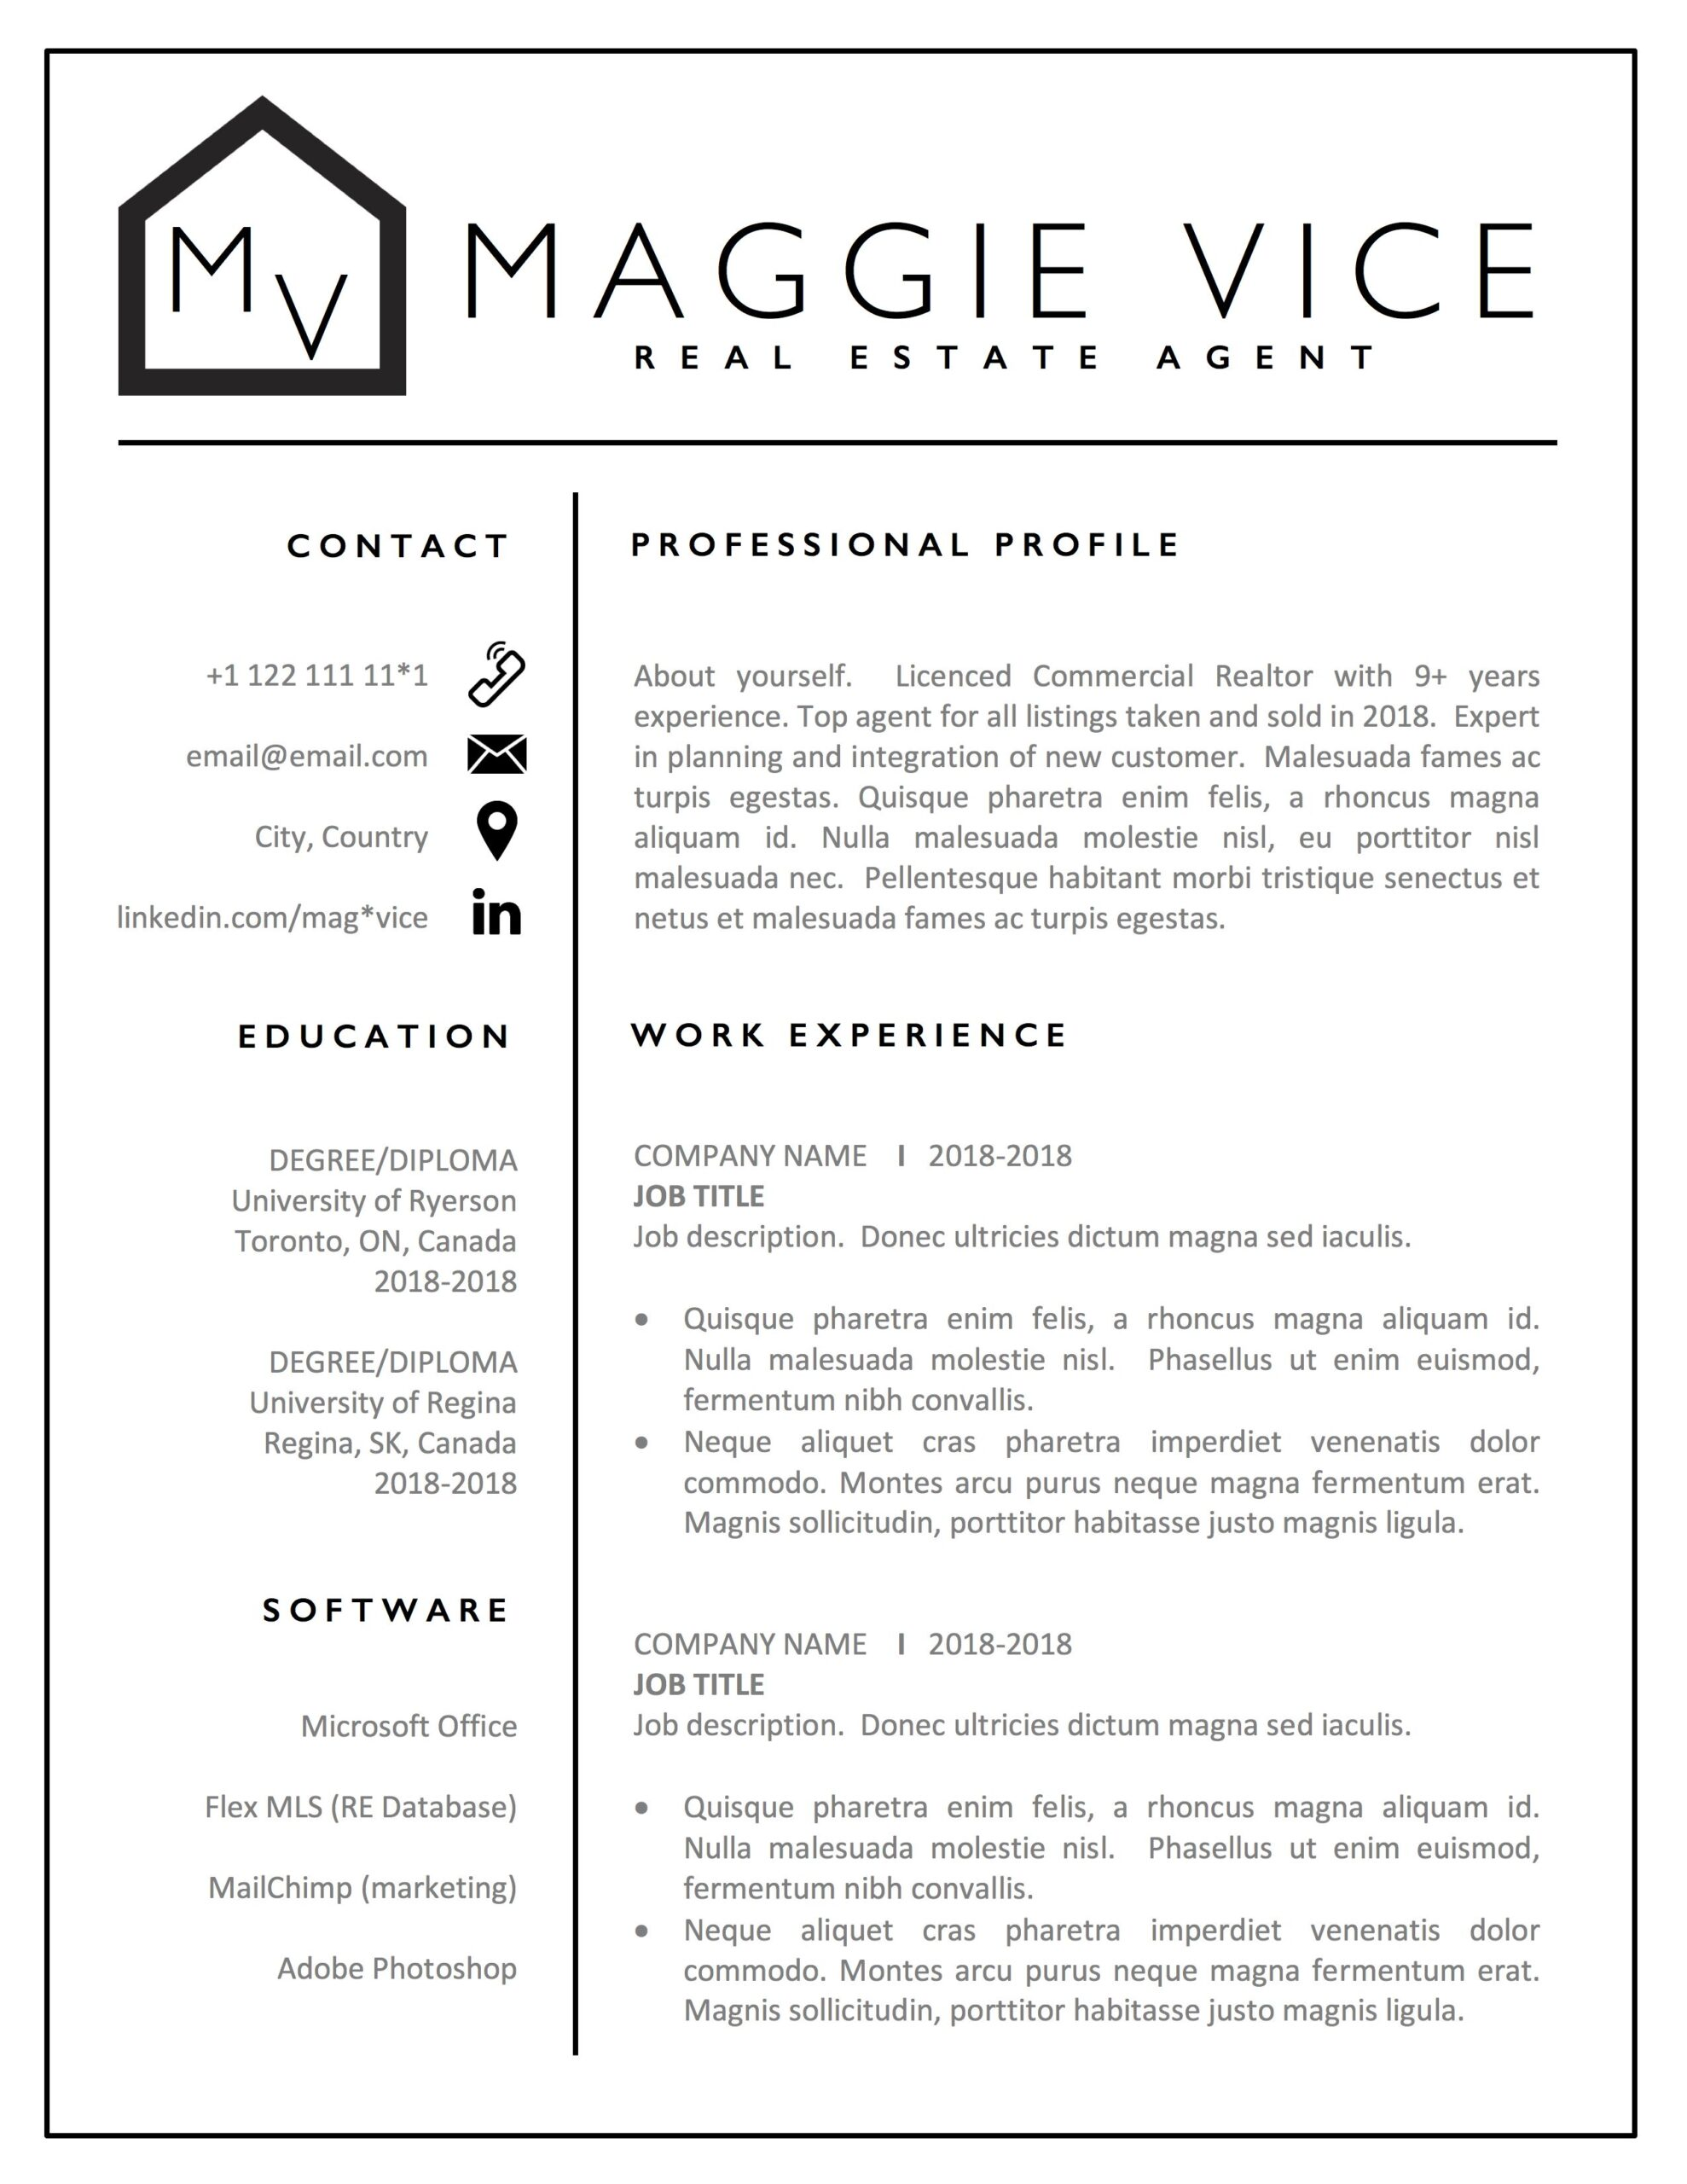 estate agent resume template realtor cv commercial examples free cover letter layout Resume Real Estate Resume Examples Free